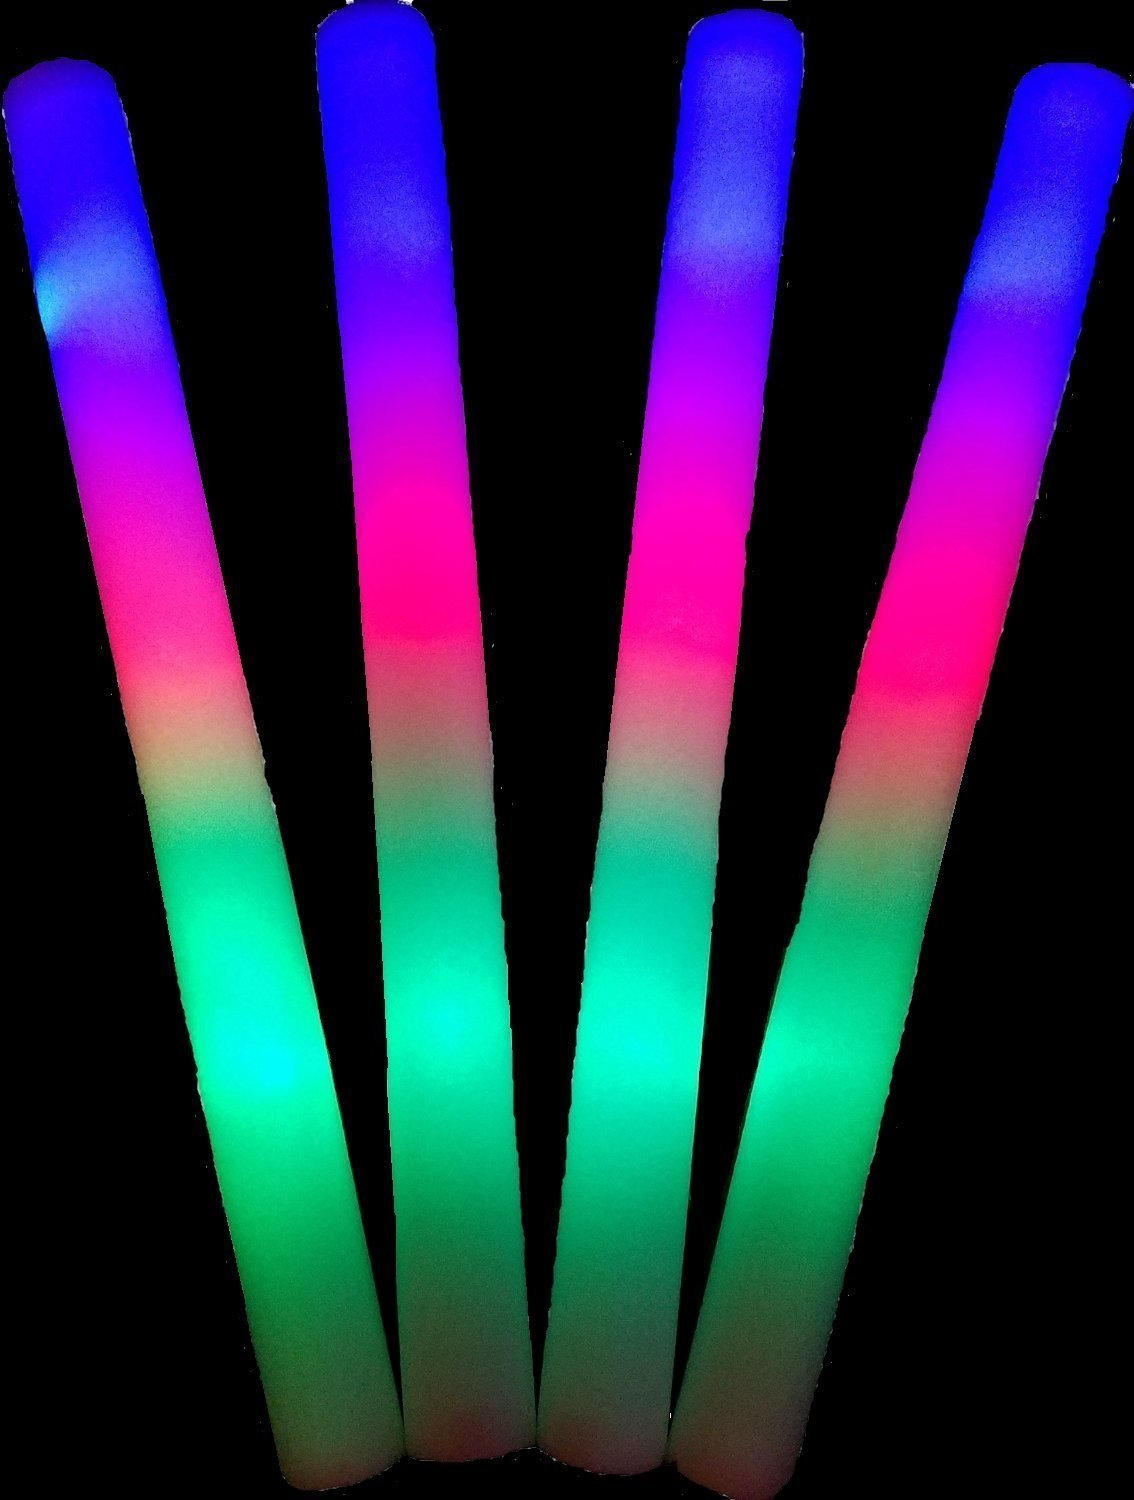 ❗ 100 pack of 18'' Multi Color Foam Baton LED Light Sticks - 3 model flashing, Multicolor Color Changing Rally Foam Sticks by YMCtoys (Image #2)